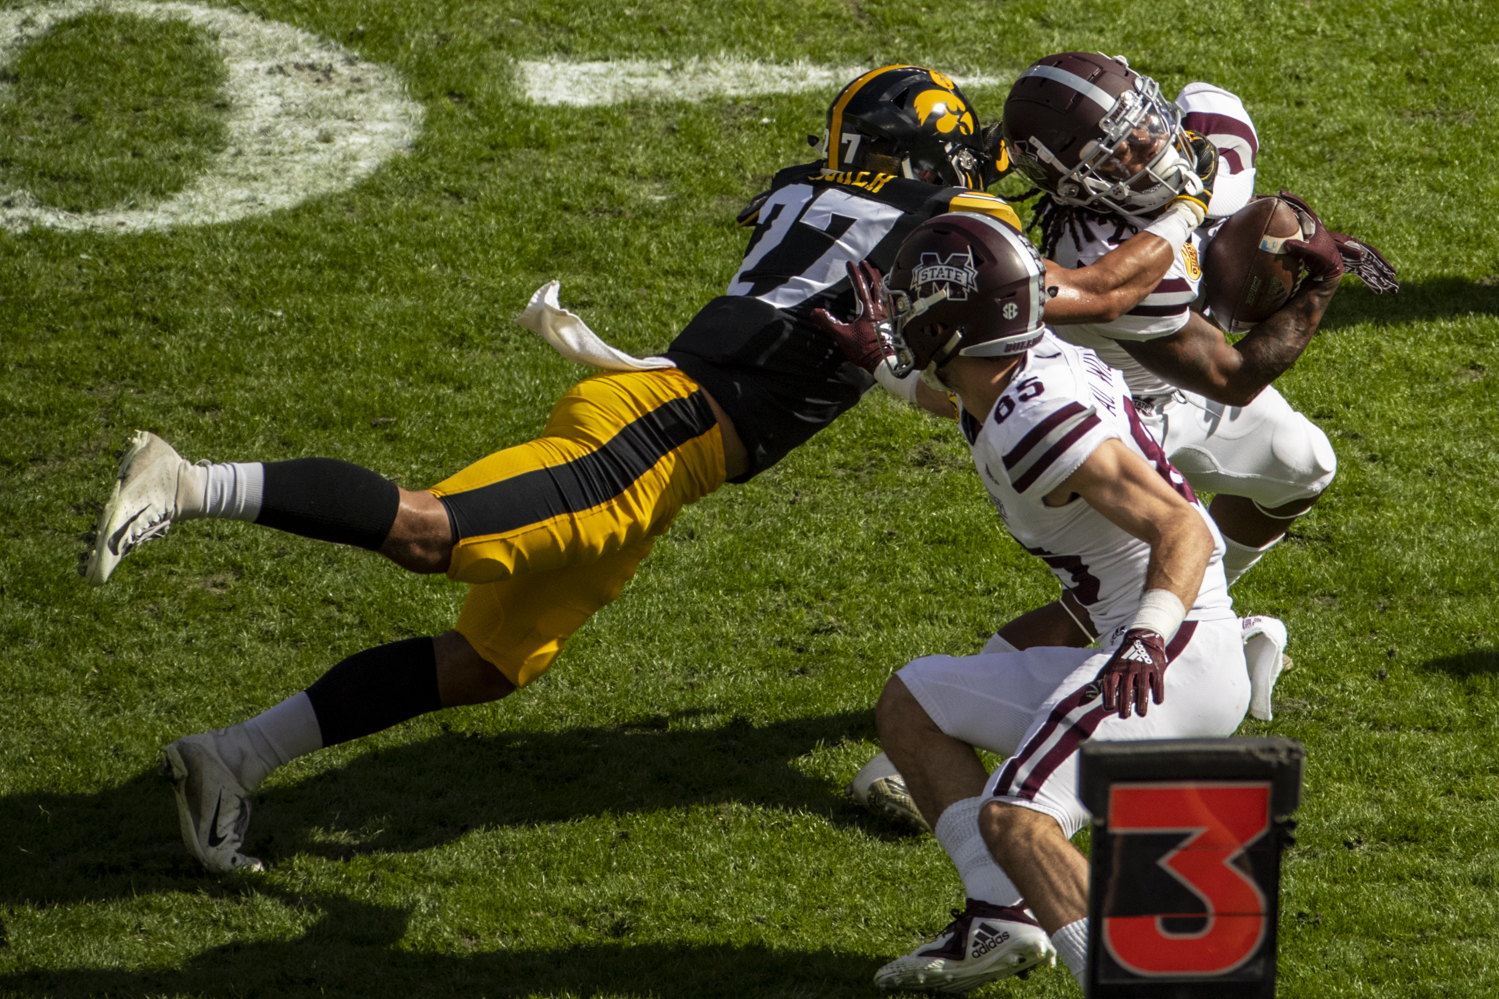 Iowa defensive back Amani Hooker tackles Mississippi State running back Aeris Williams during the Outback Bowl game between Iowa and Mississippi State at Raymond James Stadium in Tampa, Florida on Tuesday, Jan. 1, 2019. The Hawkeyes defeated the Bulldogs, 27-22.